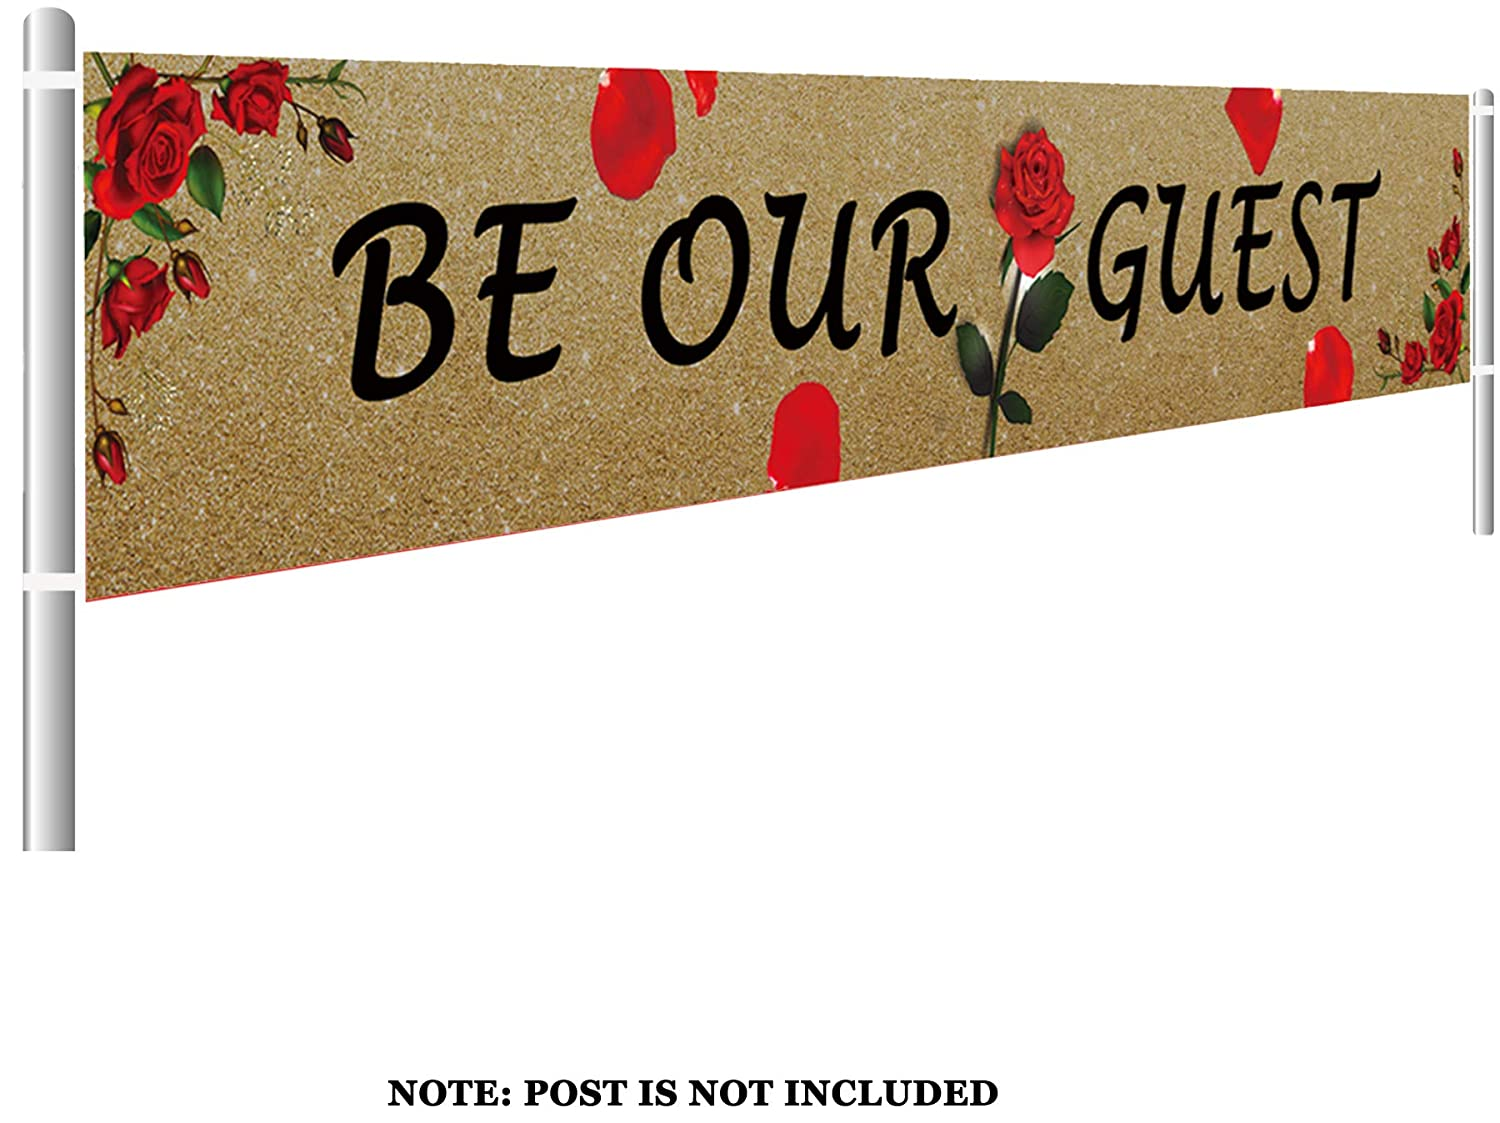 Lets Get Flocked Up Banner Summer Hawaiian Luau Party Decorations 9.8 x 1.5 feet Colormoon Large Flamingo Bachelorette Party Supplies Decorations